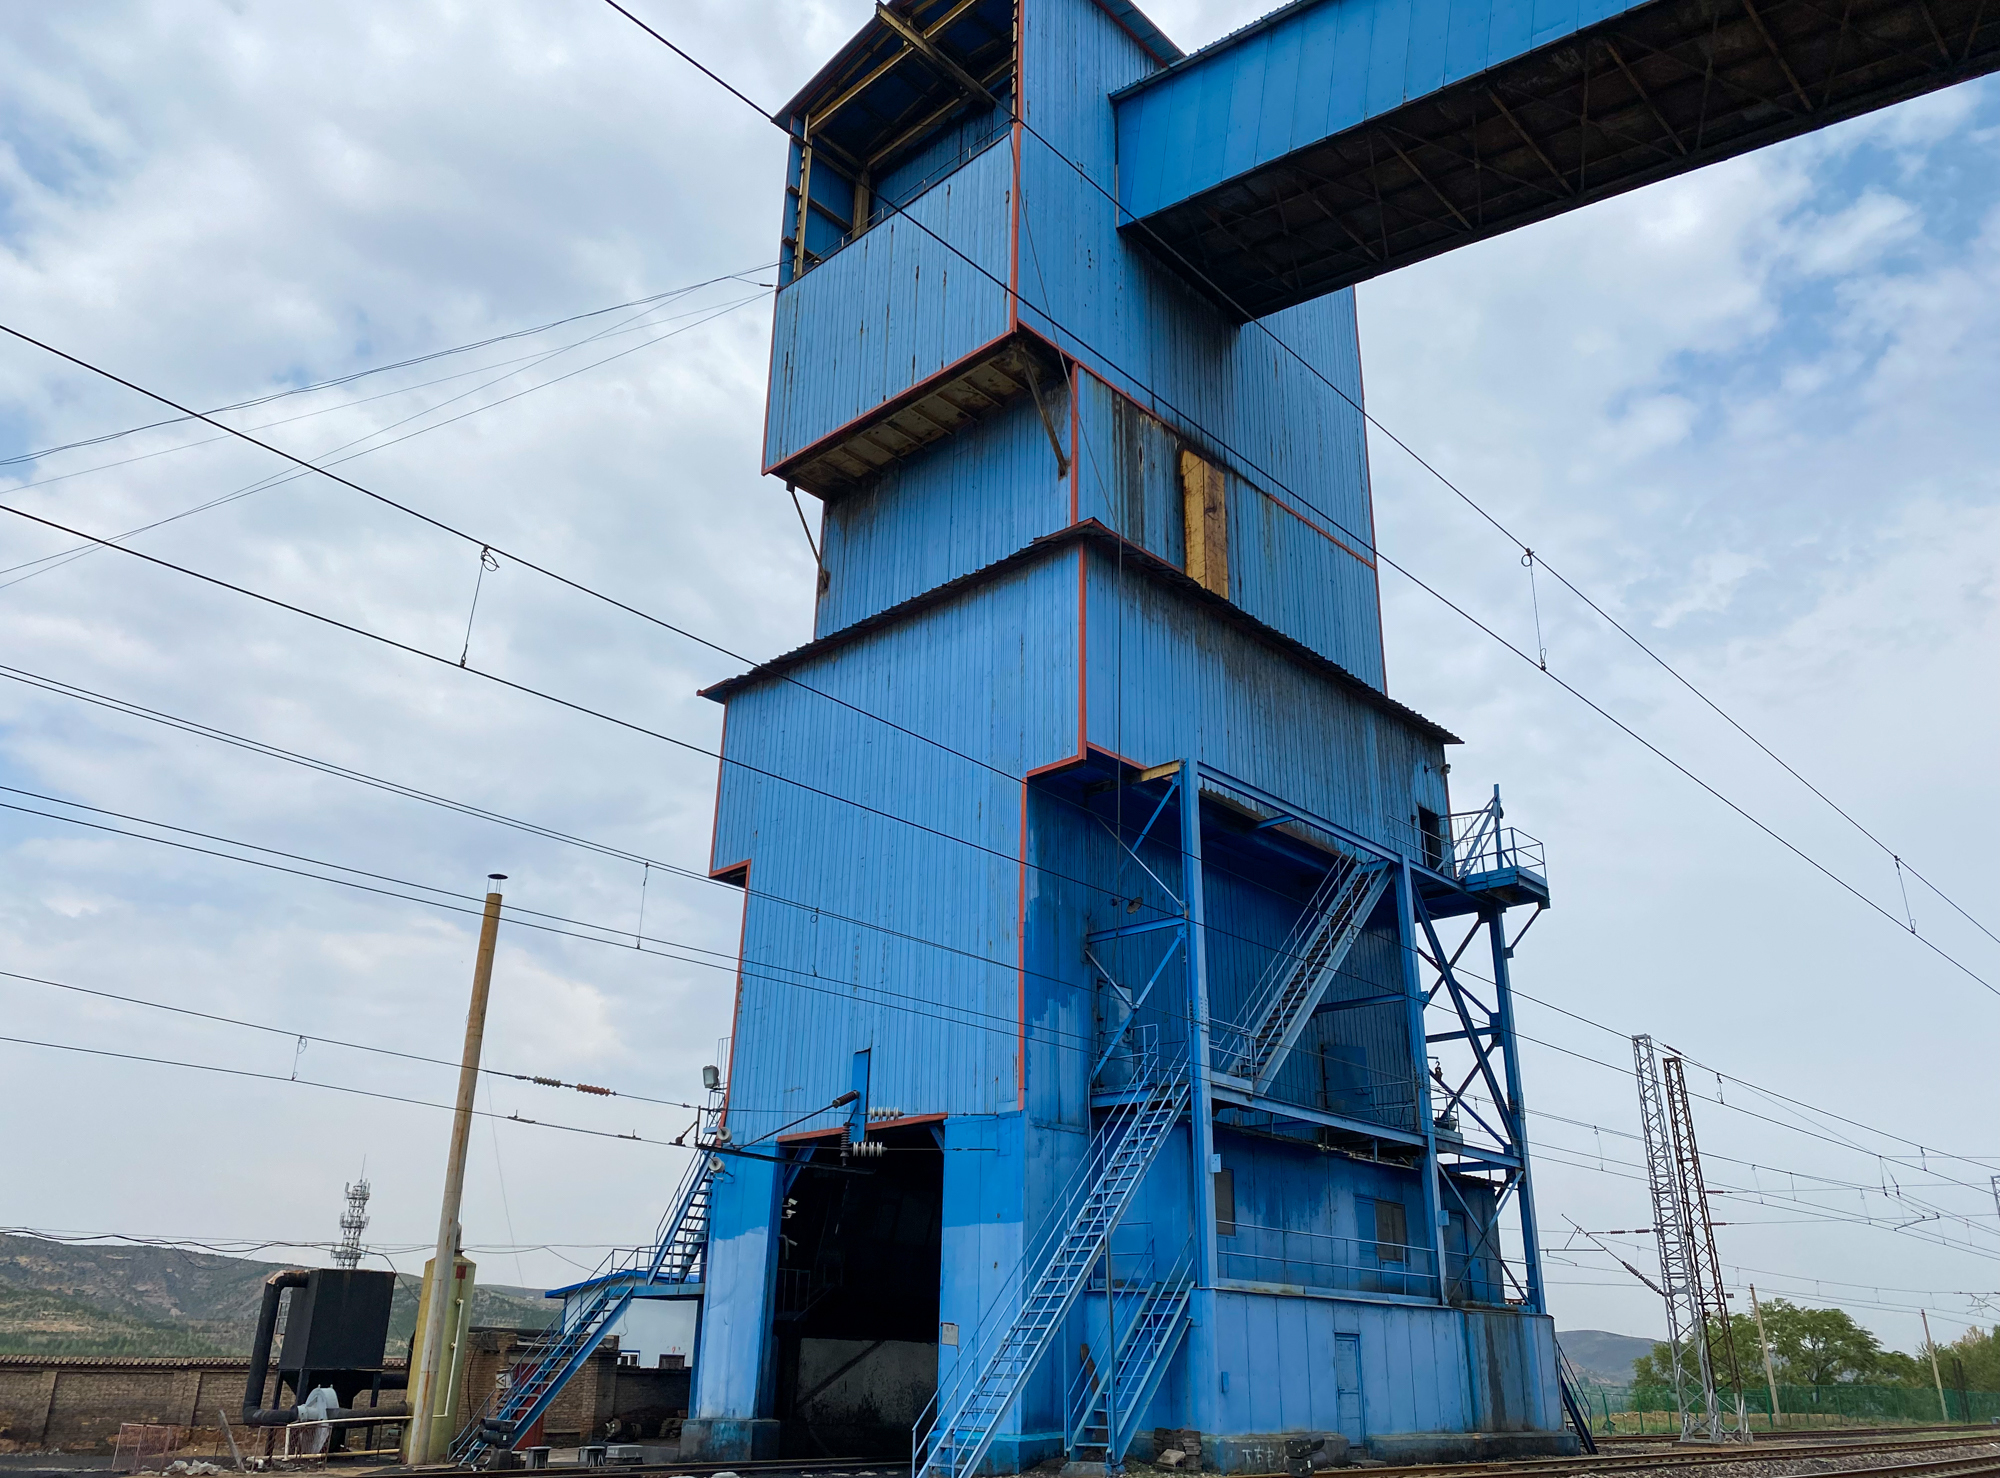 An industrial-looking building that has been painted blue.